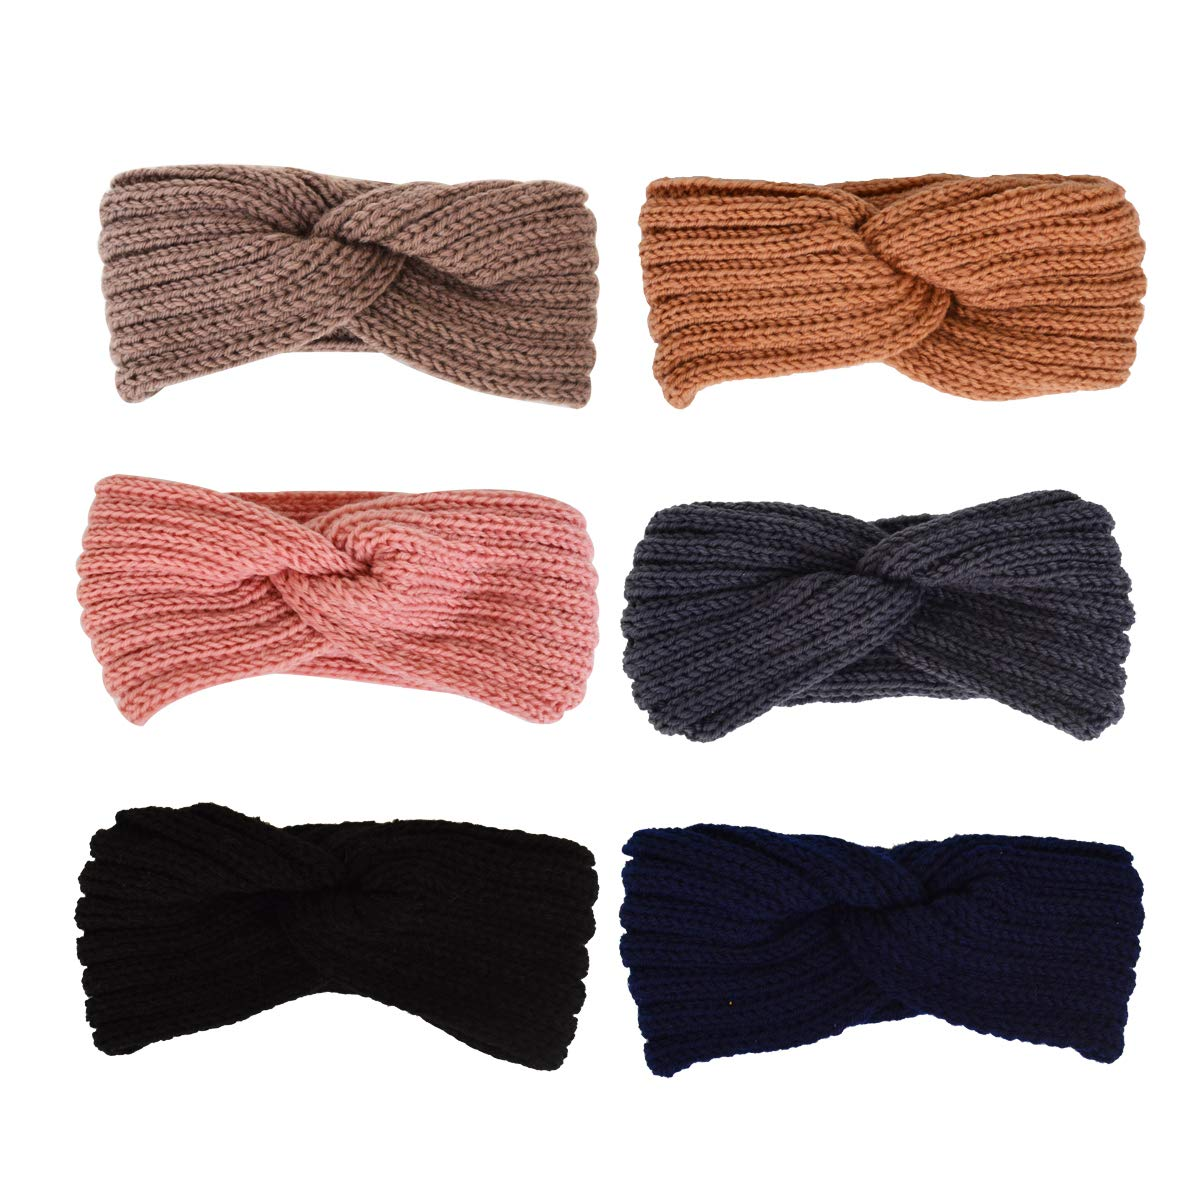 Bleiou 6 Pack Winter Warmer Ear Knitted Headband Turban For Lady Women Assorted Colors